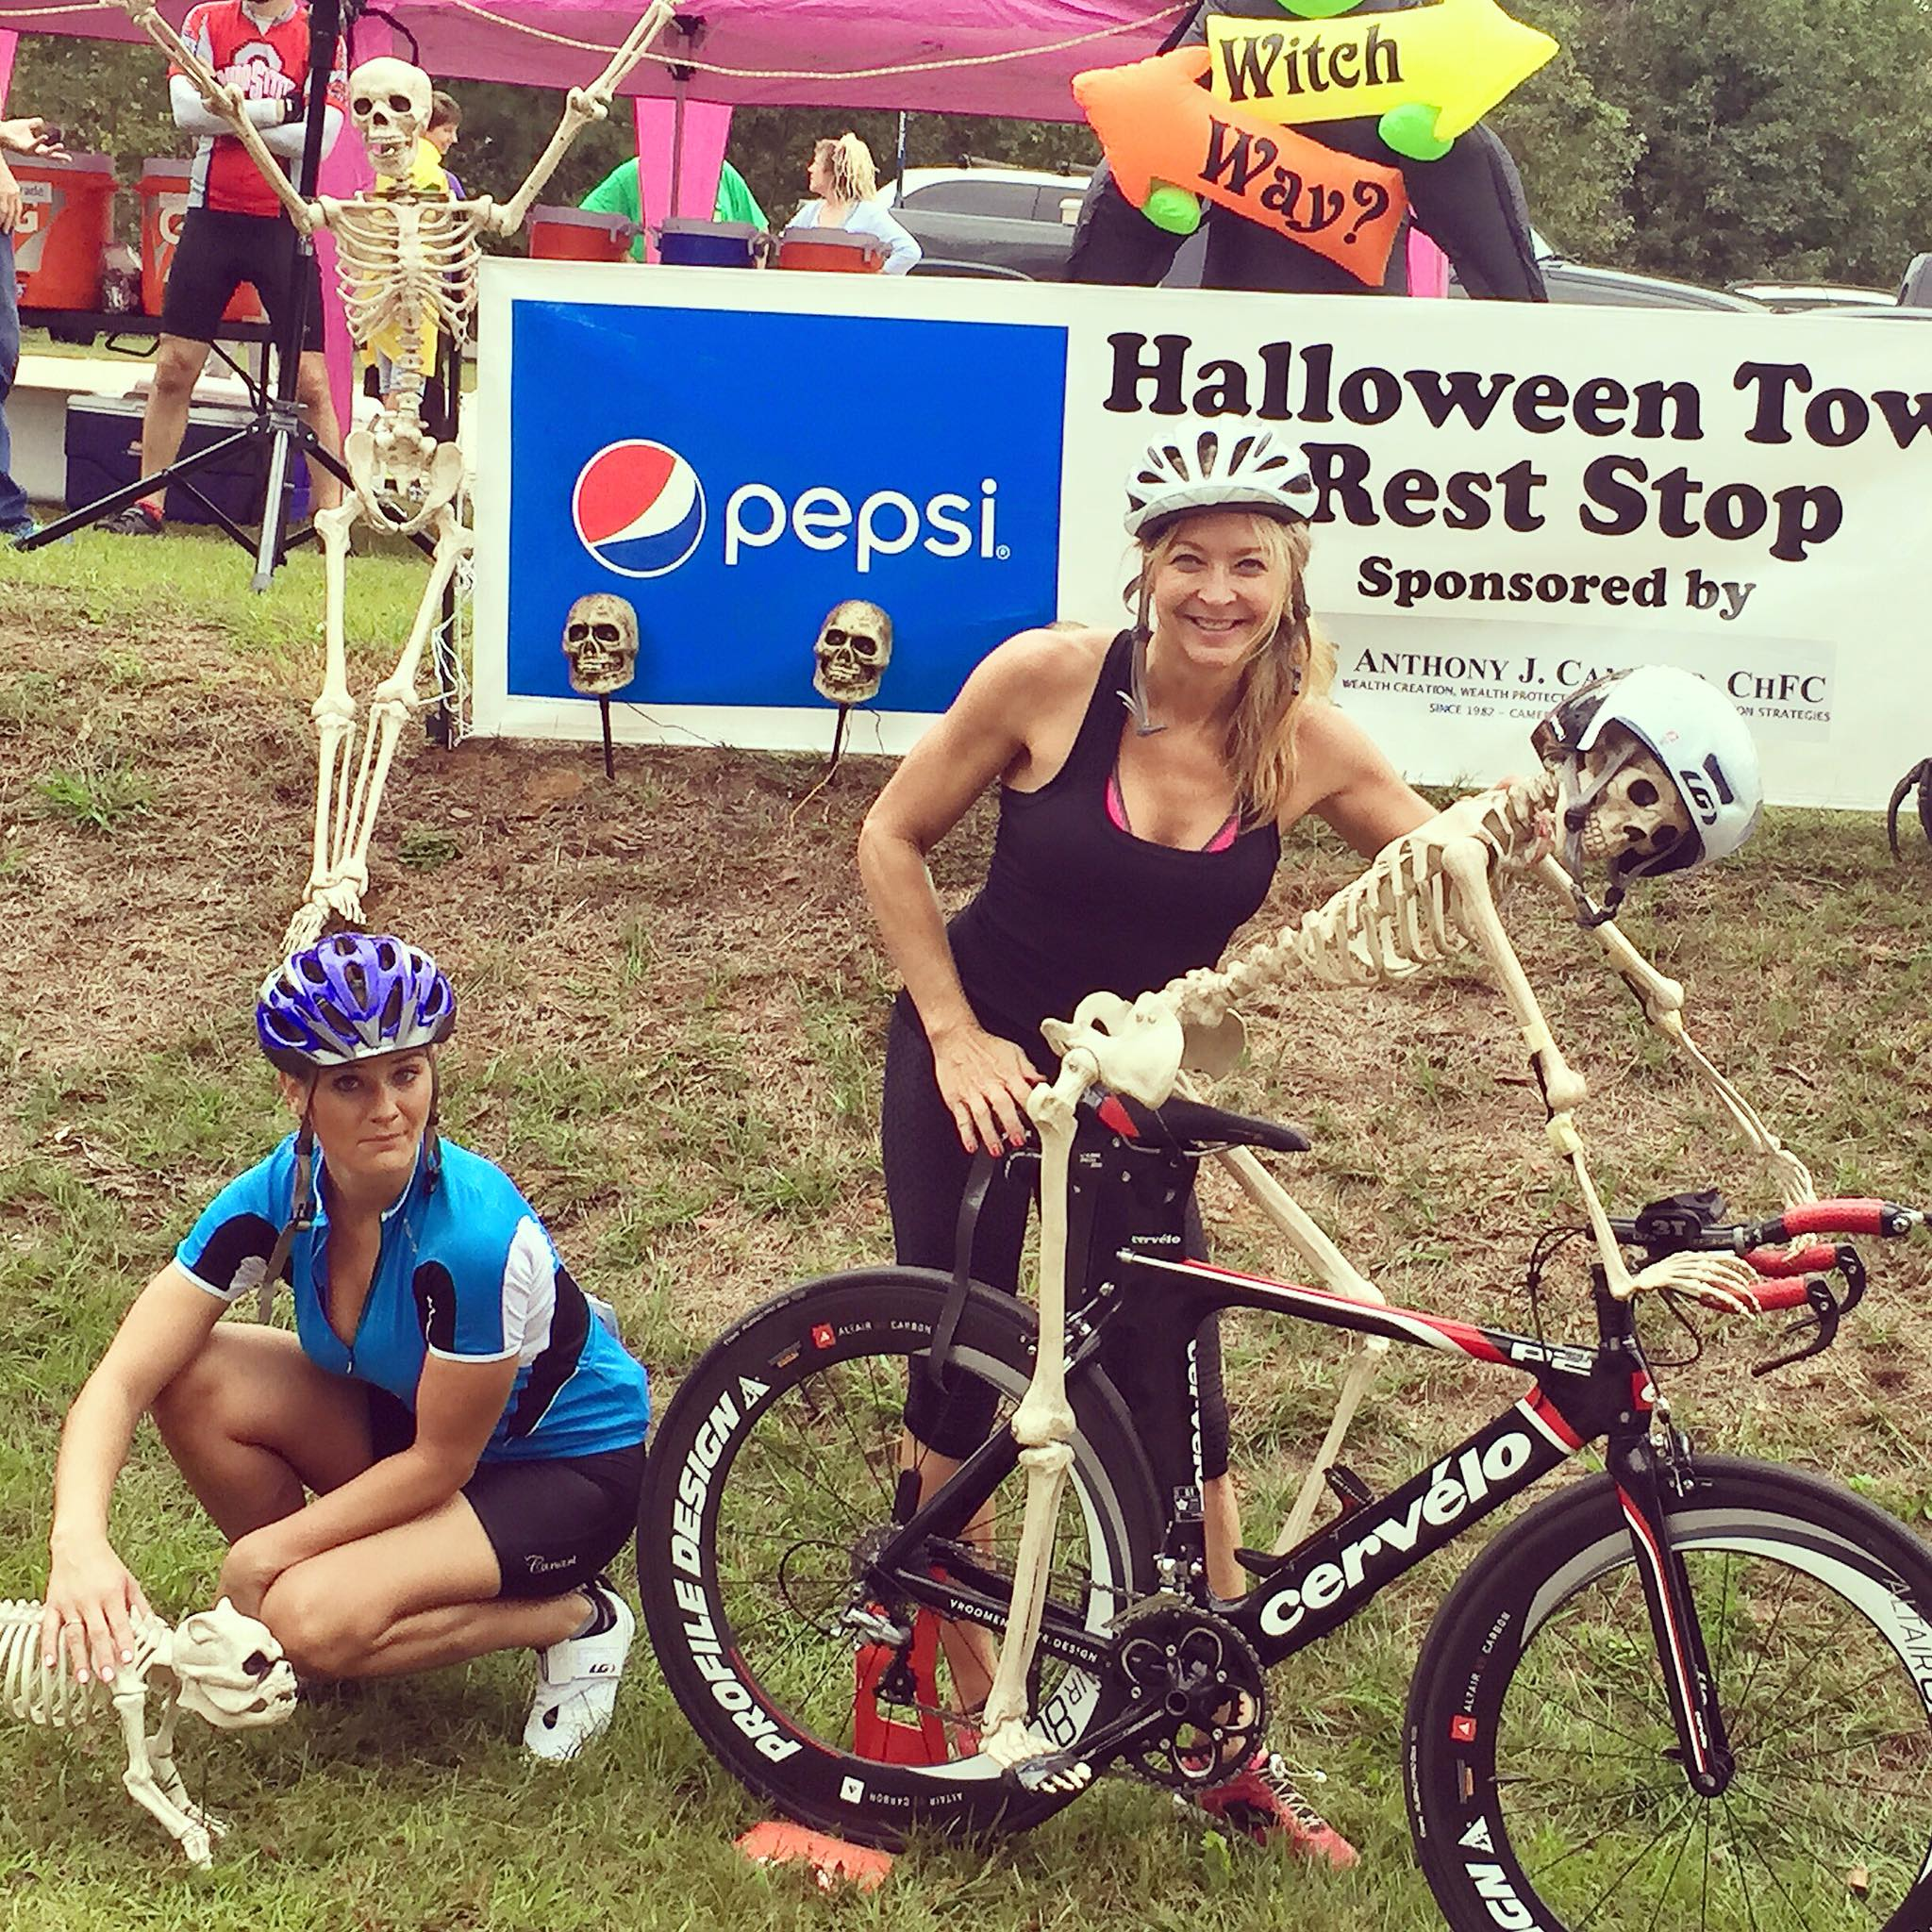 https://alabama-travel.s3.amazonaws.com/partners-uploads/photo/image/577c0cd74d6421144a000014/olivia_deas_2015_glassner_at_halloween_town_rest_stop.jpg